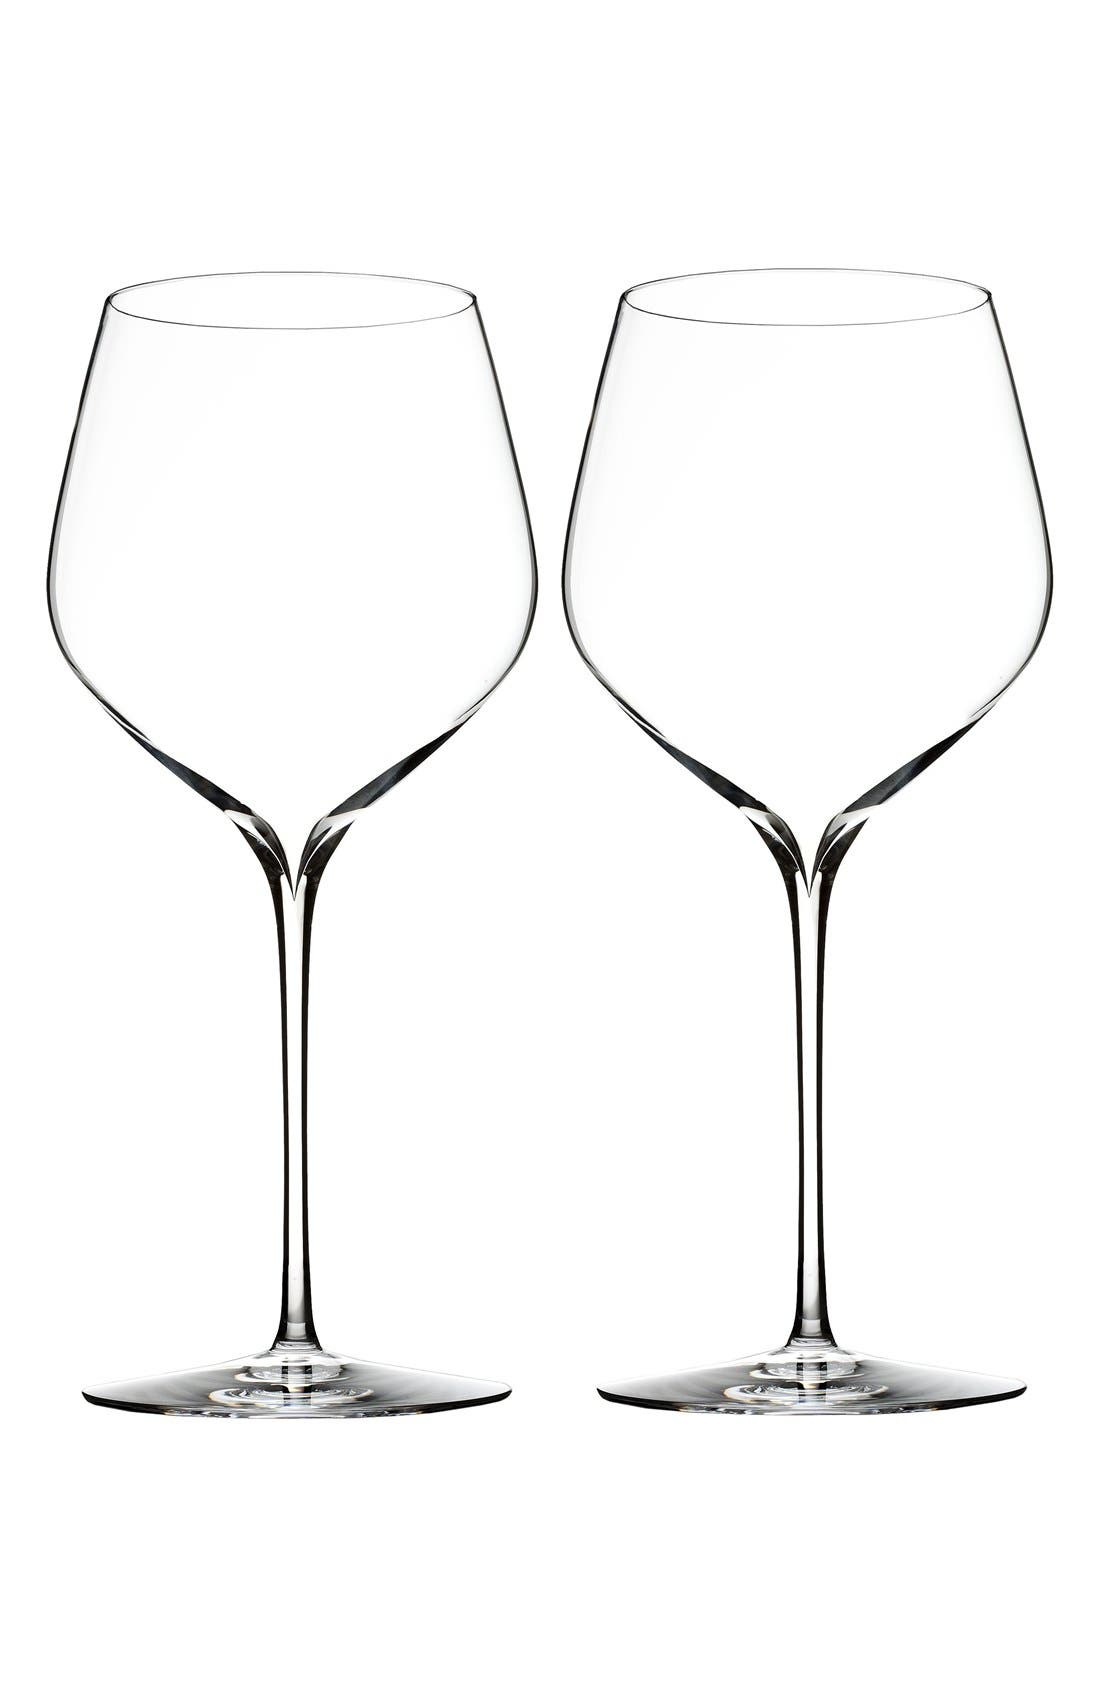 'Elegance' Fine Crystal Cabernet Sauvignon Glasses,                             Main thumbnail 1, color,                             100